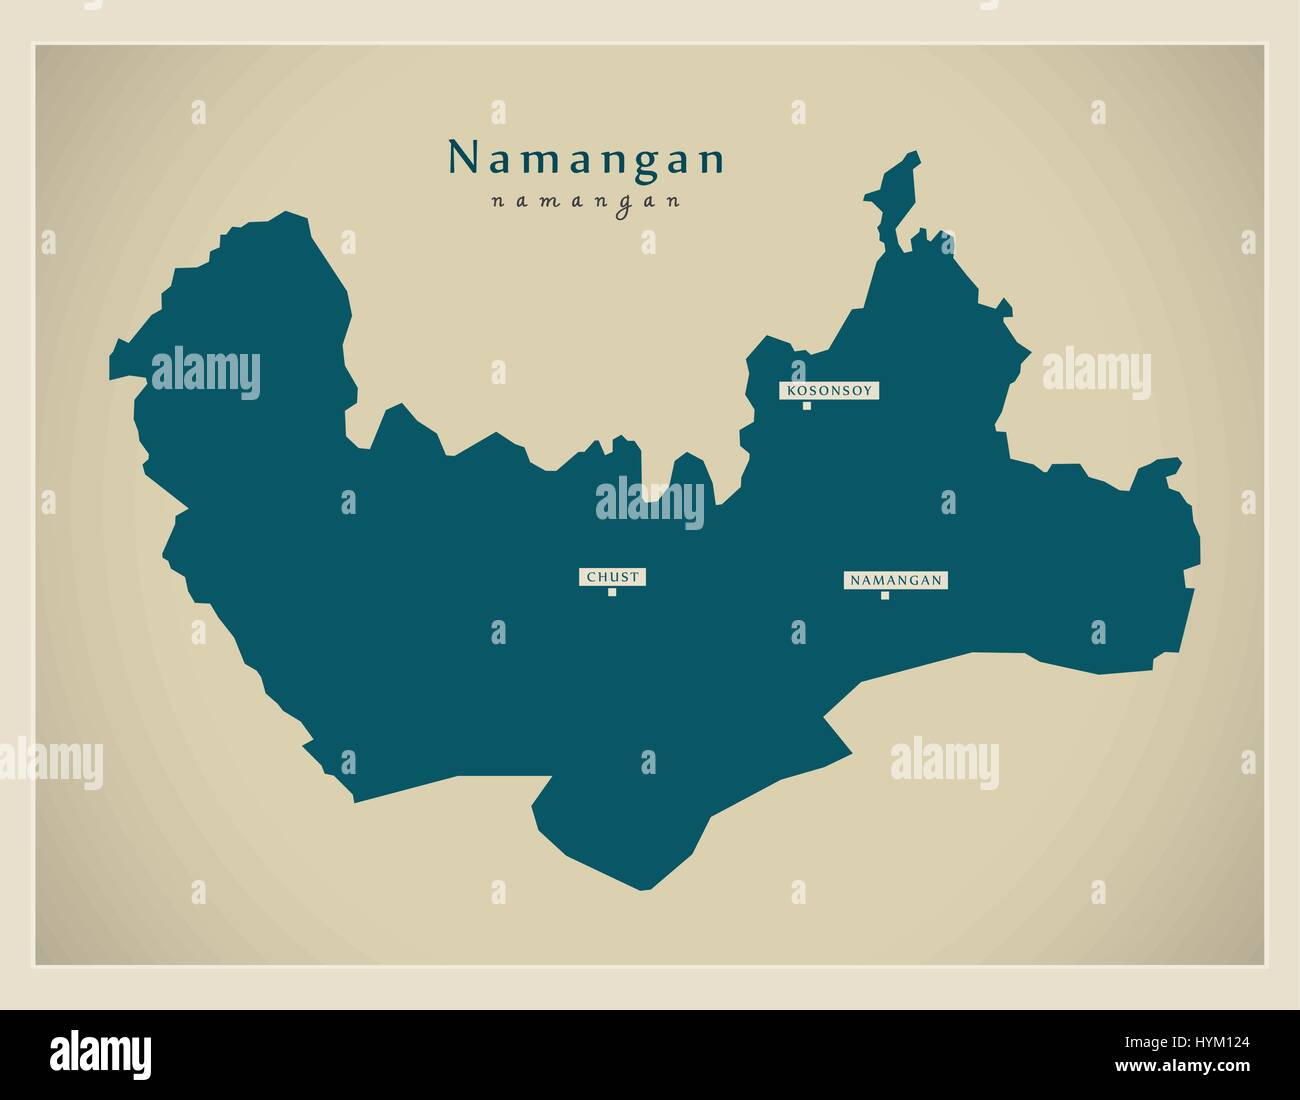 Namangan Stock Photos Namangan Stock Images Alamy